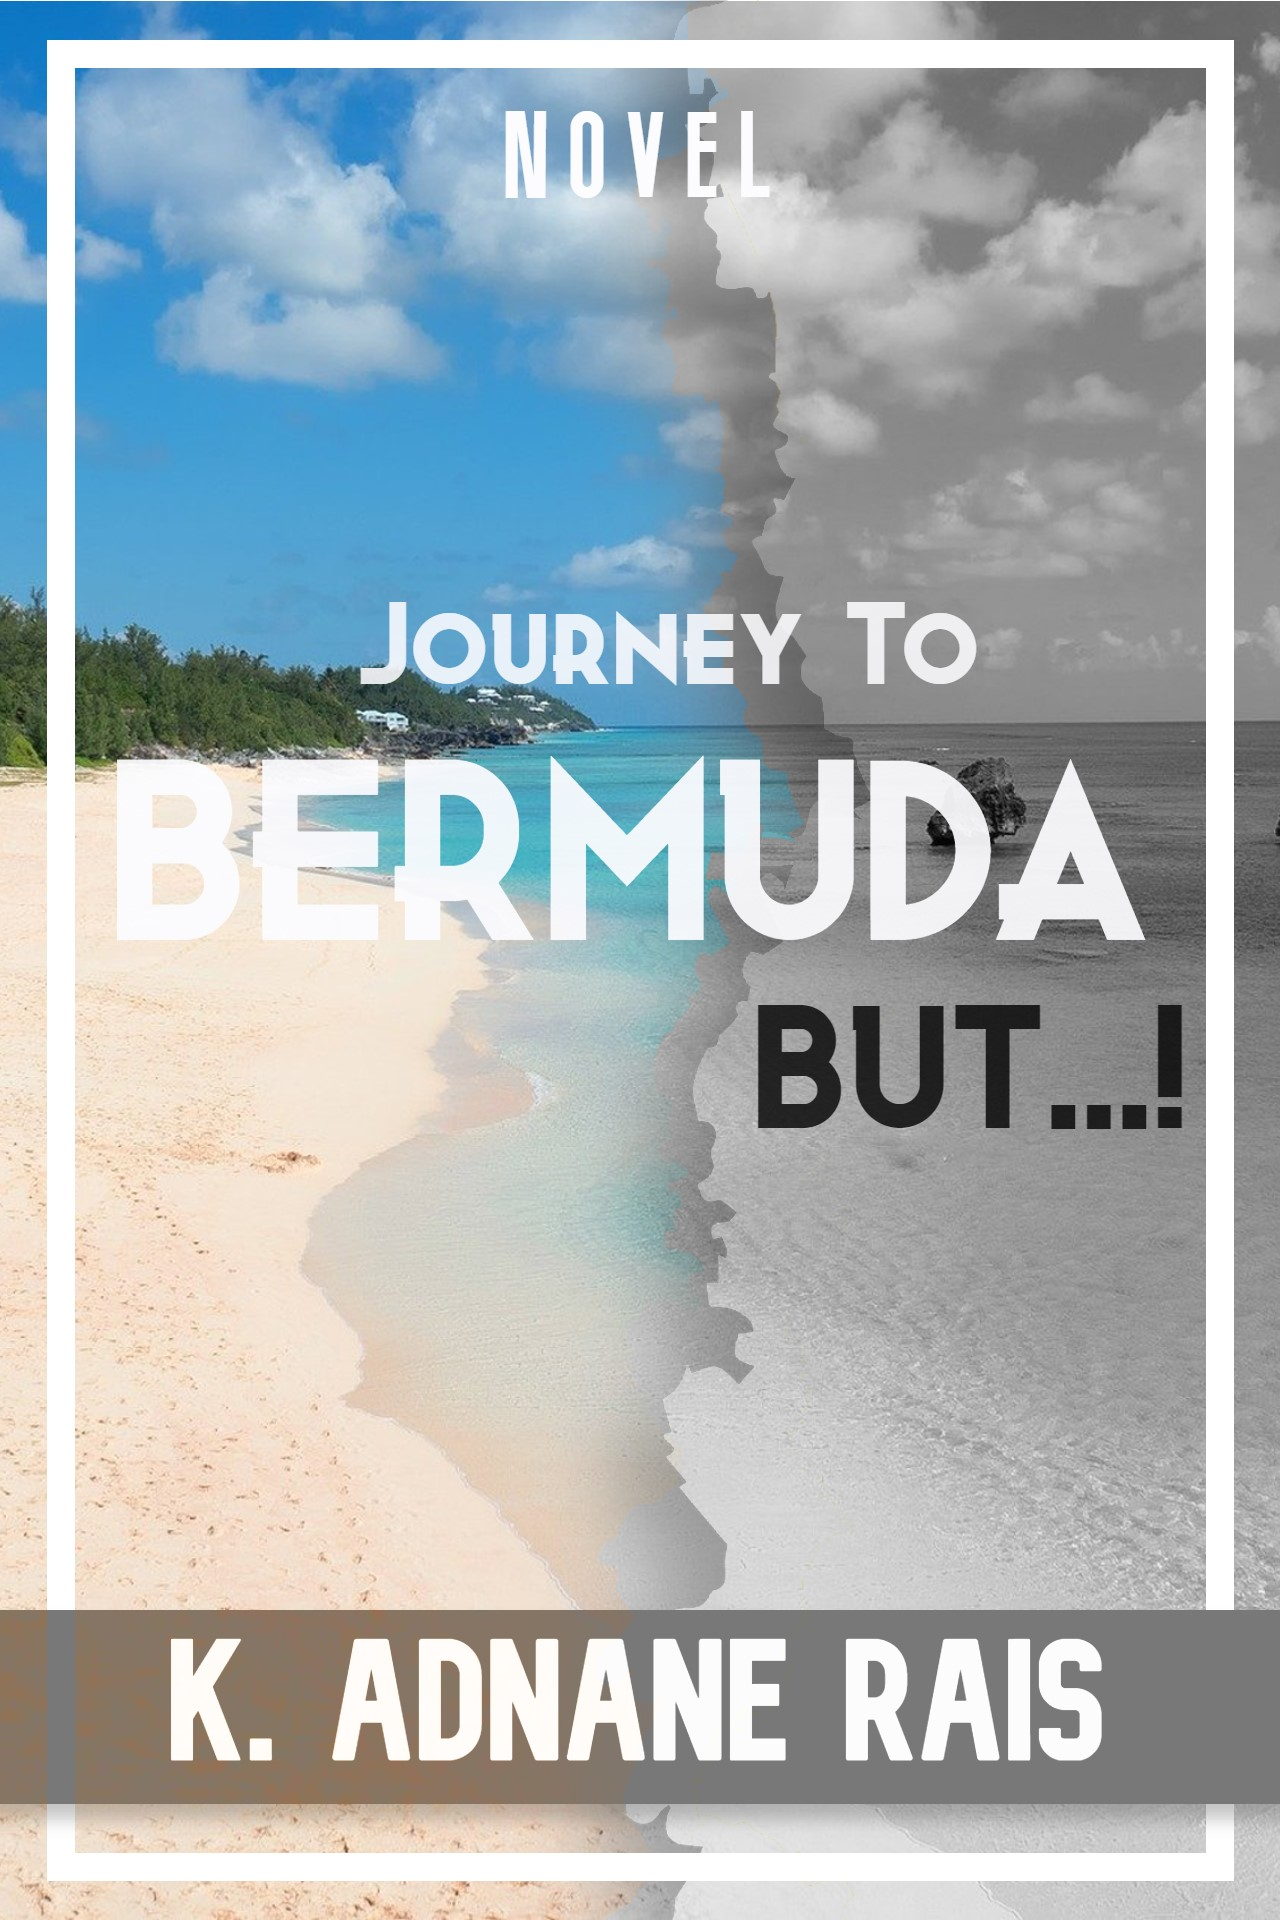 journey to Bermuda but...!